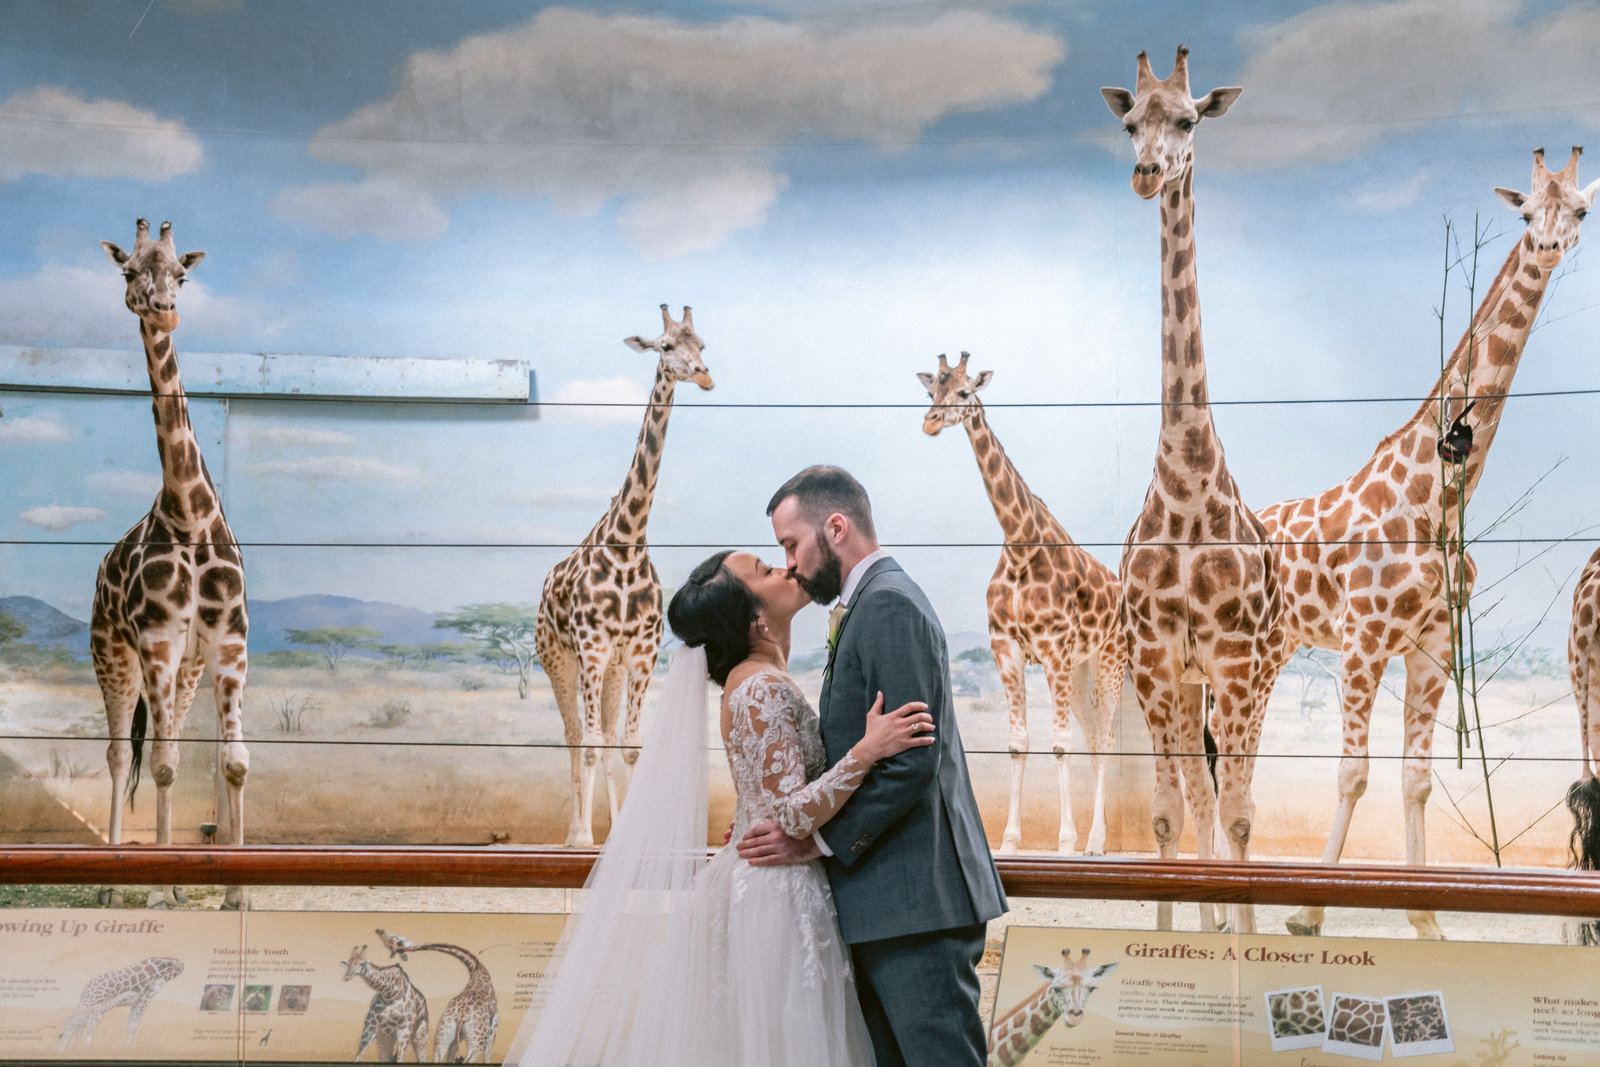 bronx-zoo-wedding-photo-at-giraffe-exhibit-by-suess-moments